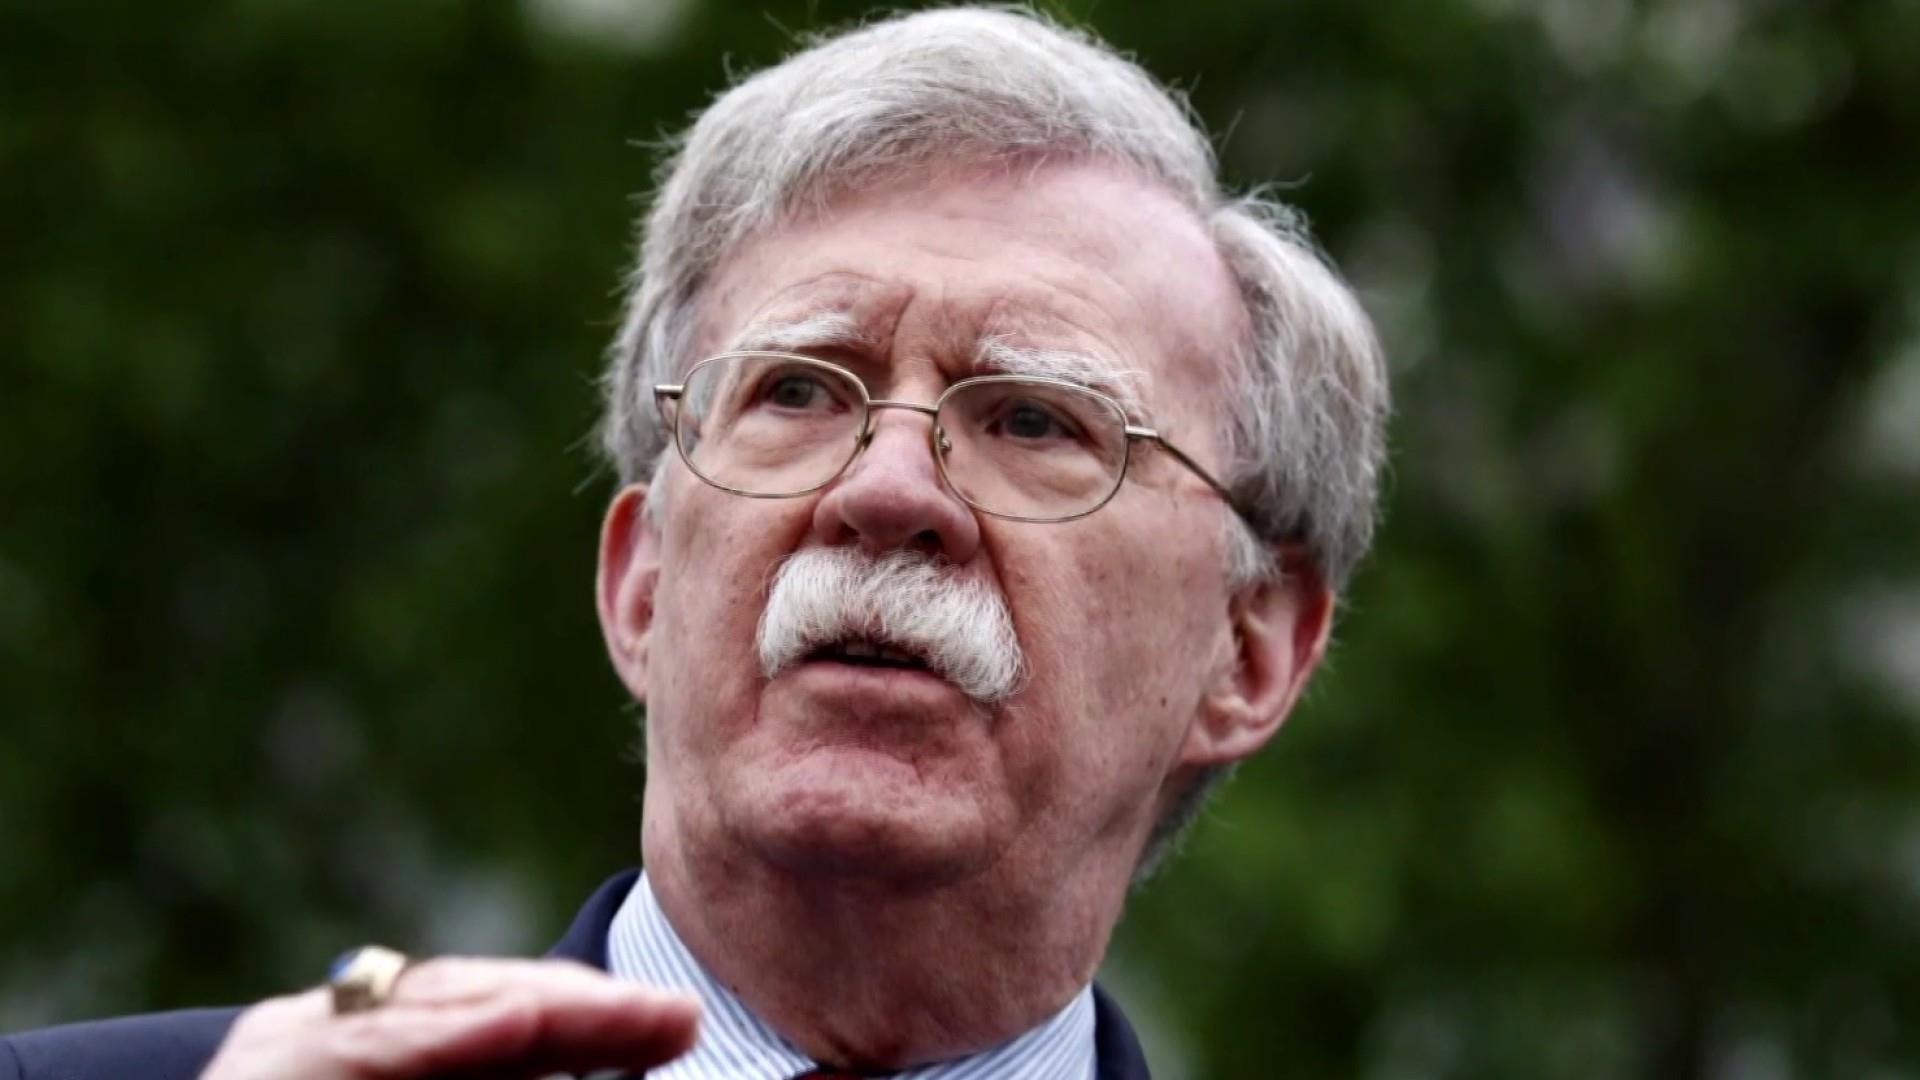 John Bolton's departure from the White House has the 3 pillars of Trumpian exits